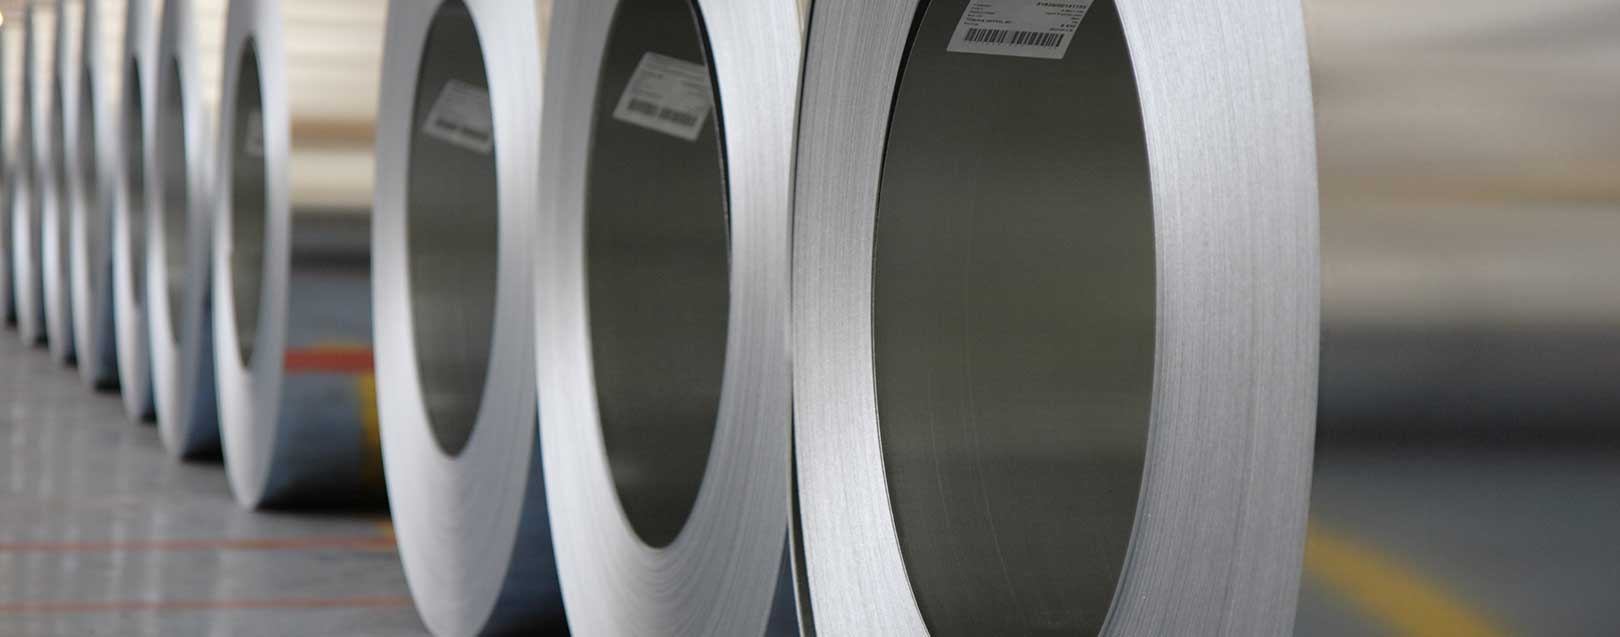 India may become net steel exporter this year